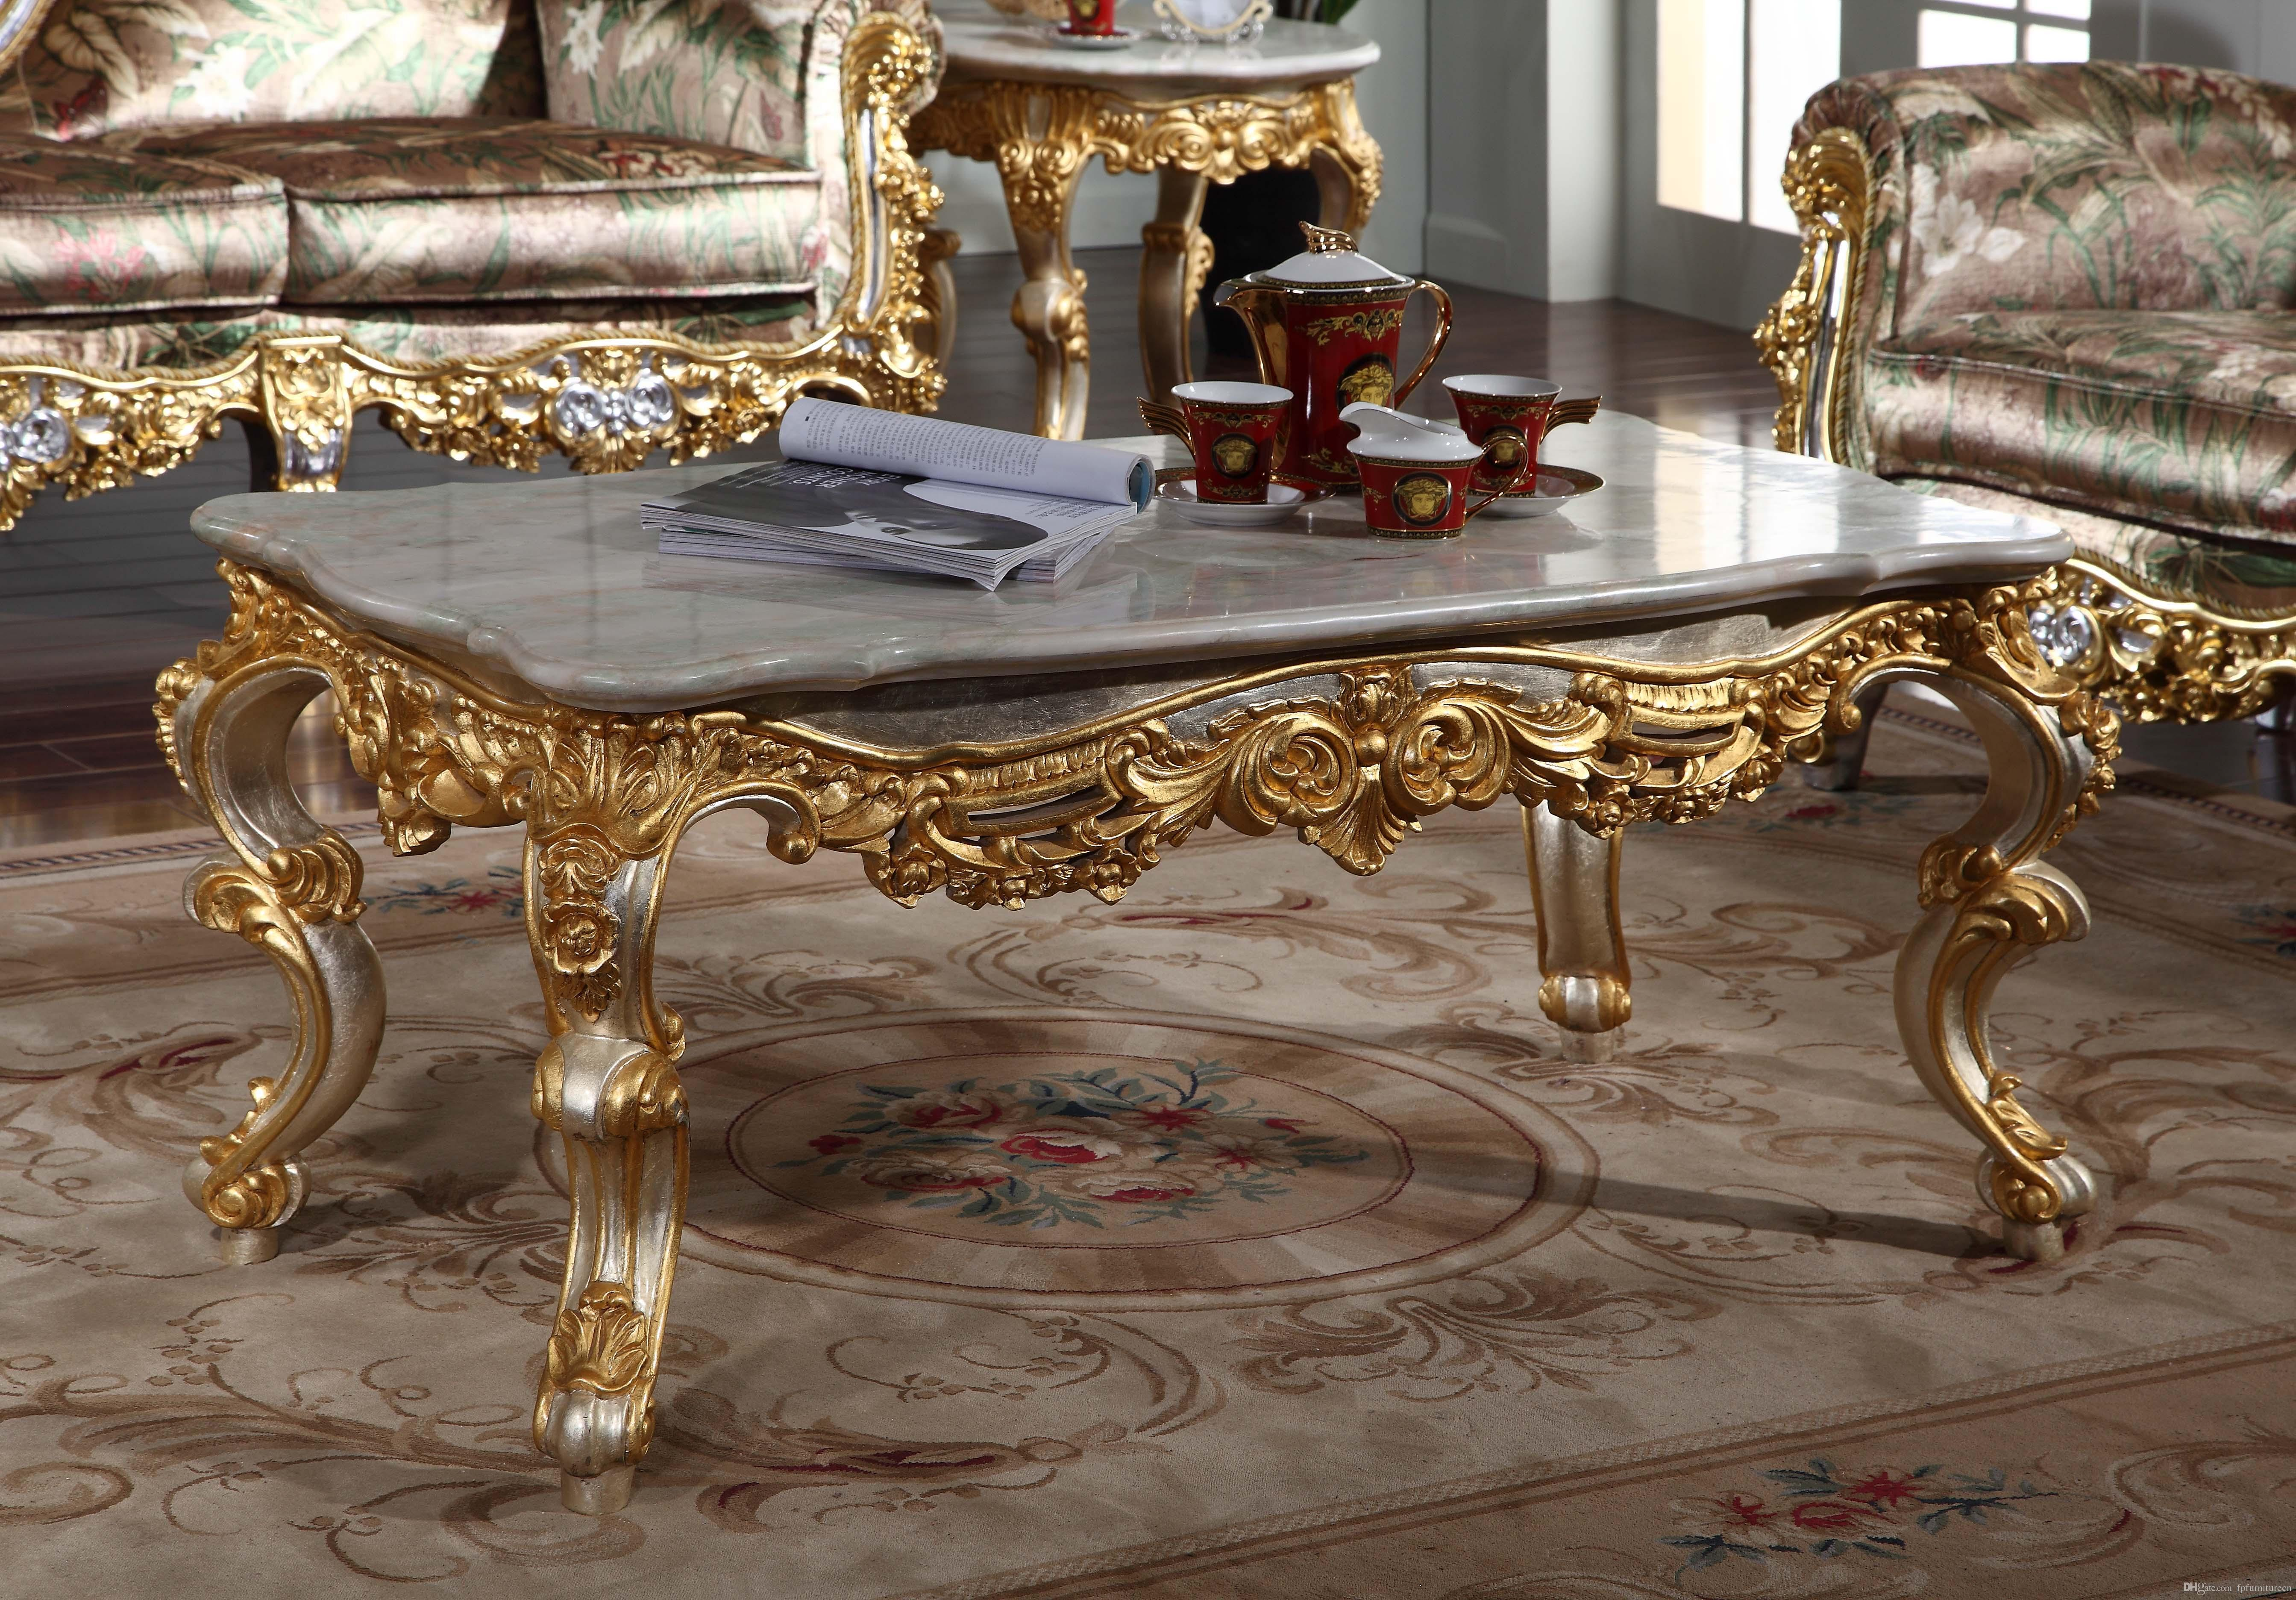 2019 Antique Baroque Living Room Furniture French Classic Coffee Table With Leaf Gilding Italian Coffee Table From Fpfurniturecn 141056